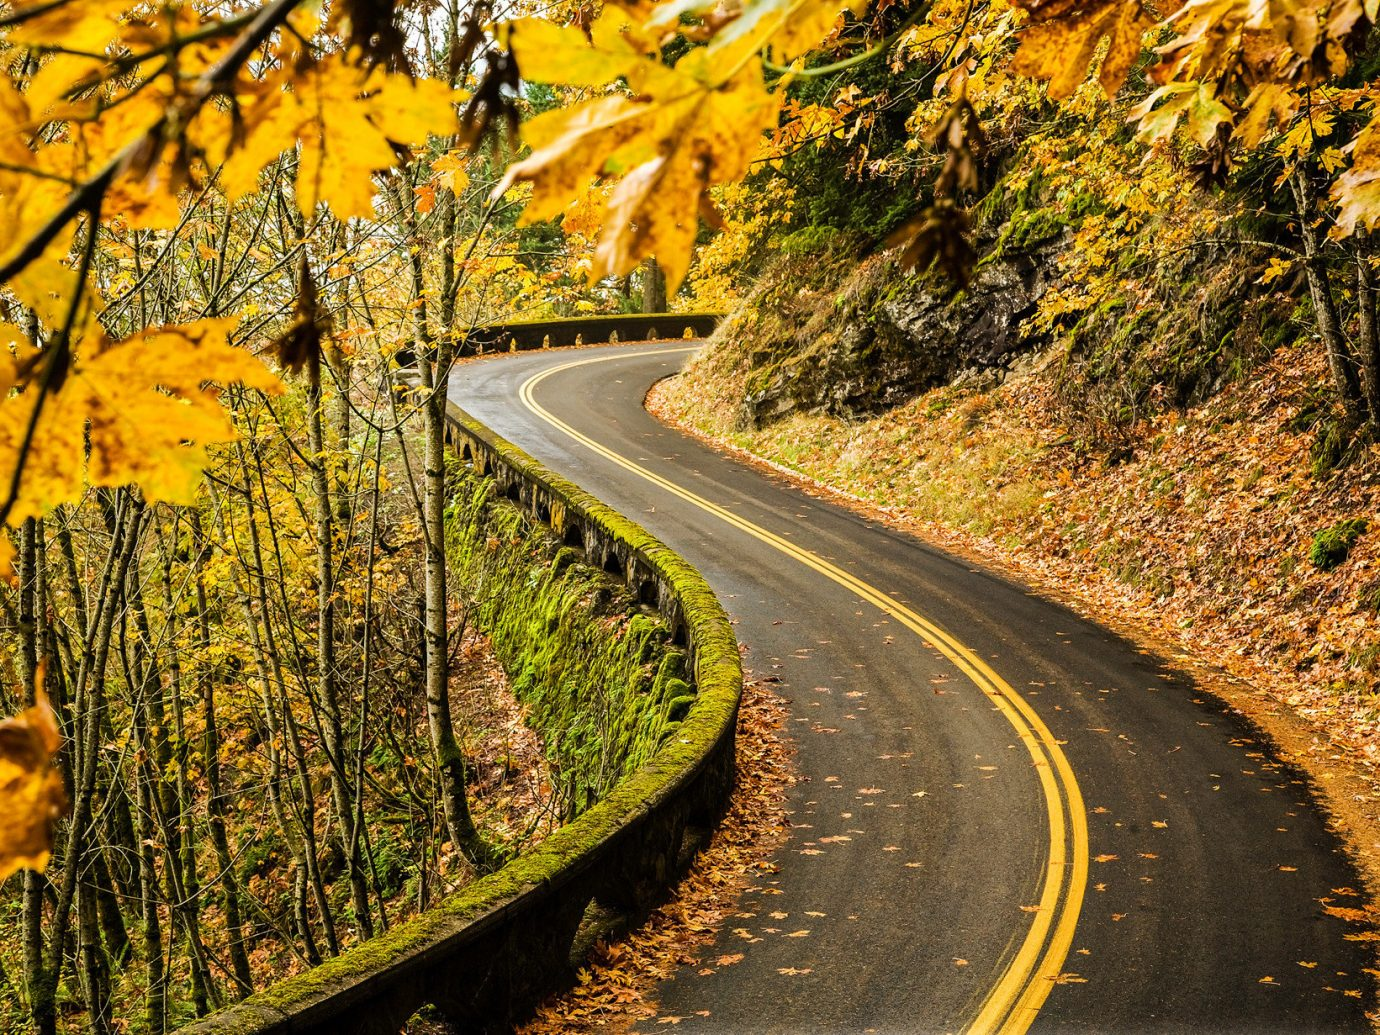 Jetsetter Guides Road Trips tree Nature outdoor road transport autumn season lane leaf plant track morning woody plant yellow infrastructure rural area landscape nonbuilding structure traveling wooded